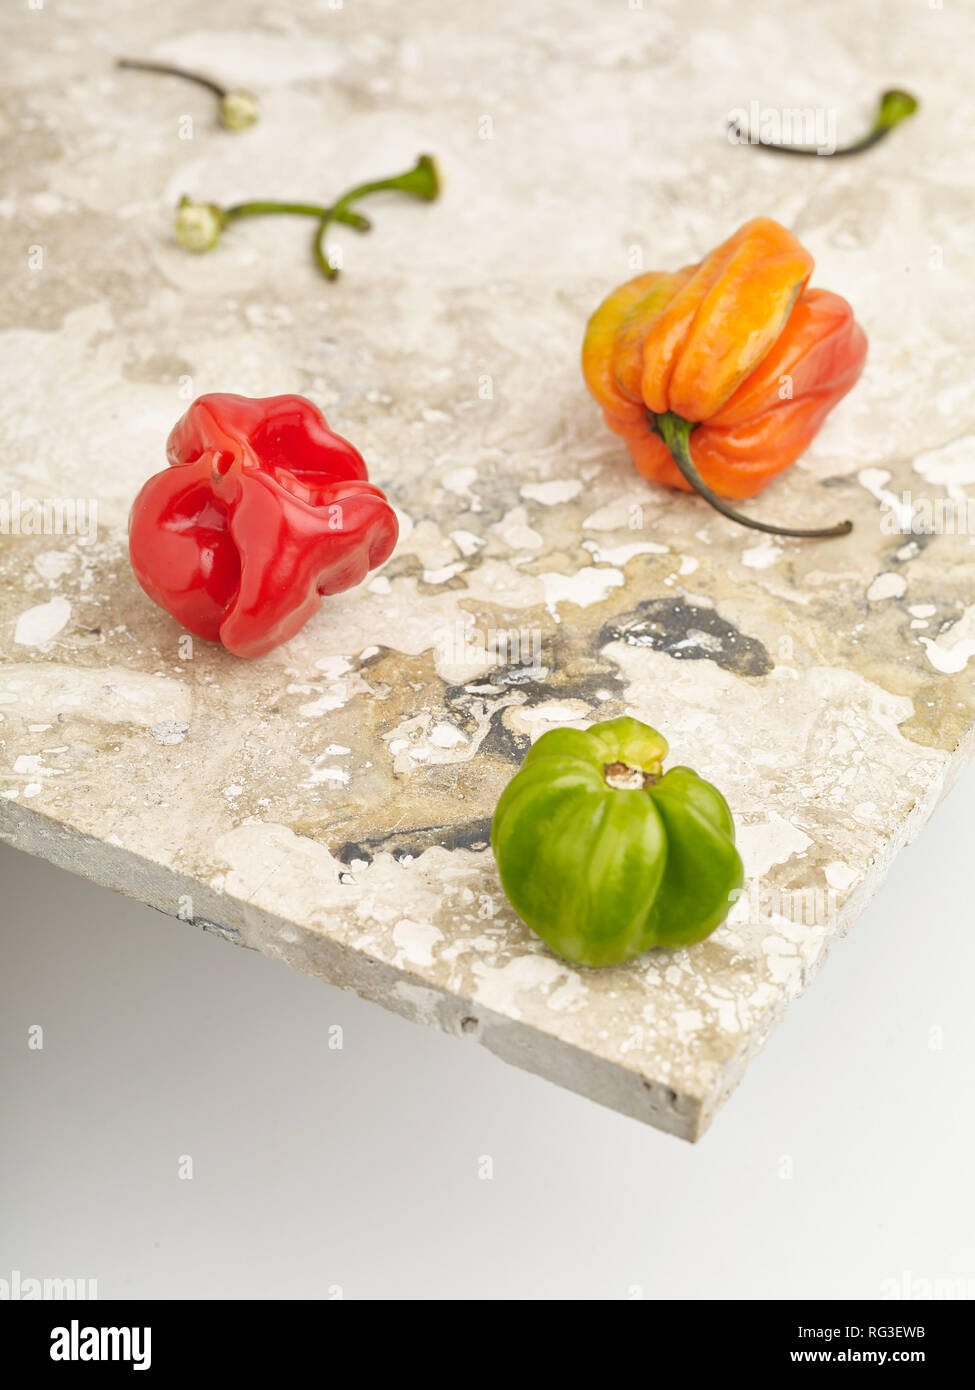 Scotch bonnet pepper and mottled marble surface against light background. Food photograph - Stock Image